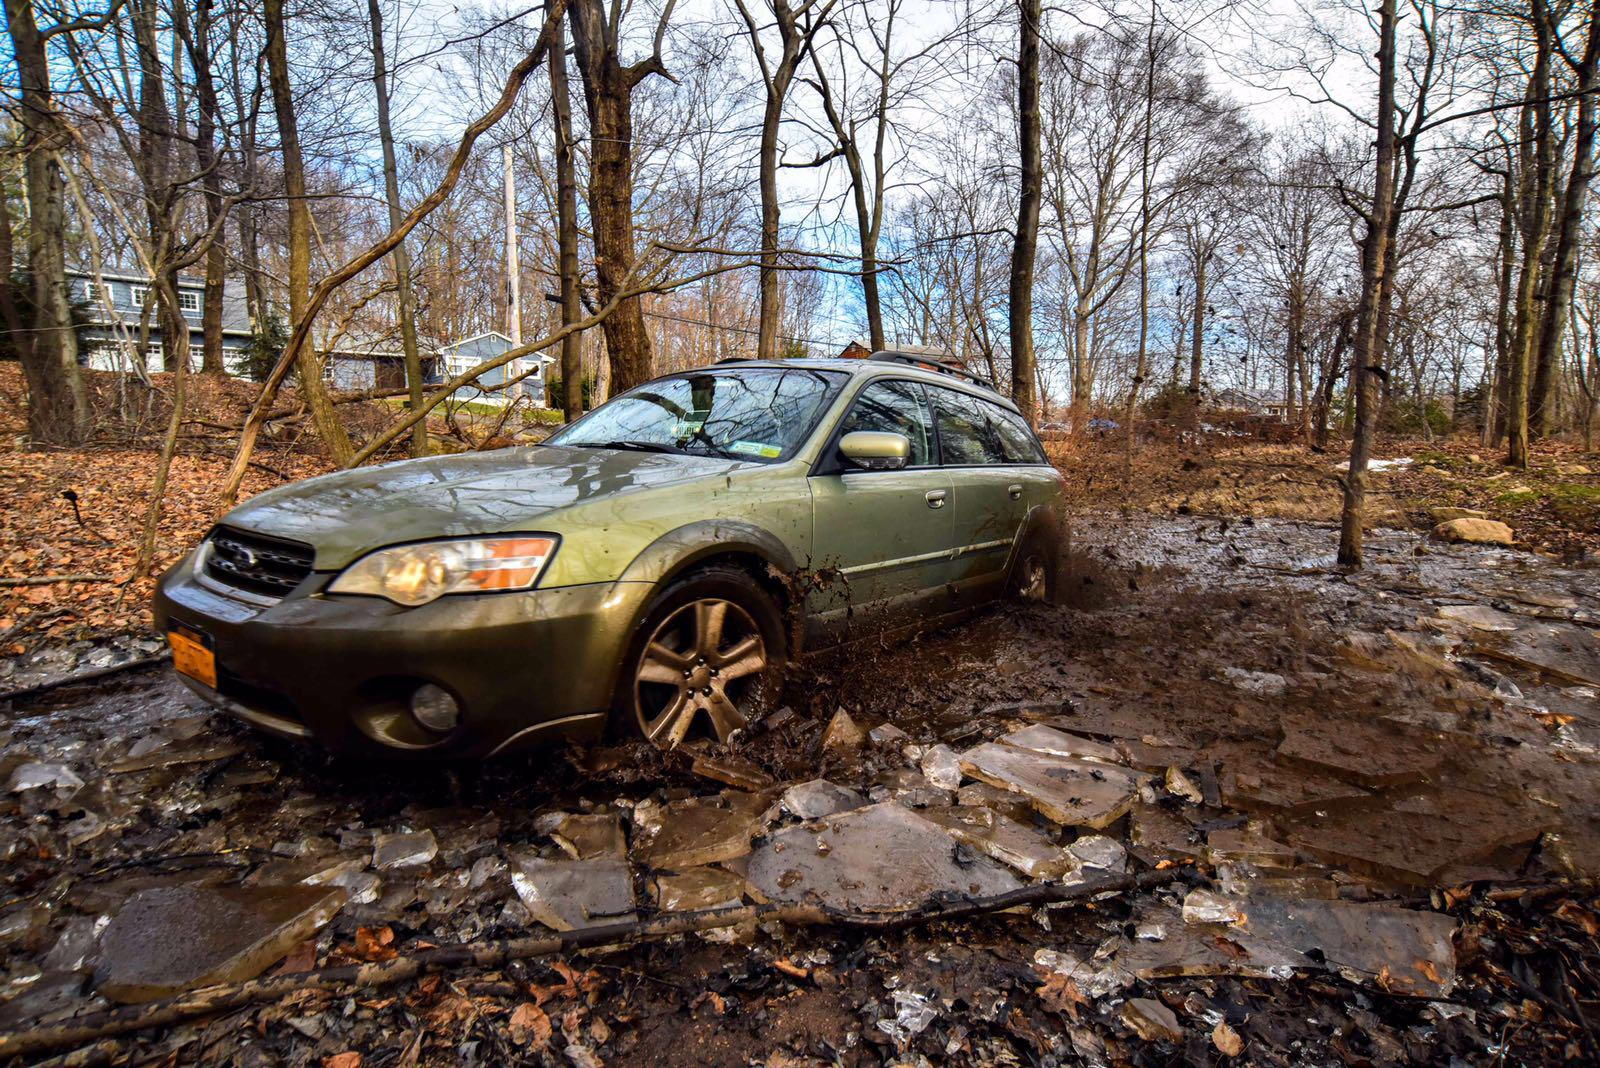 Transmission swap issues 5EAT 06 H6 LLB Outback | Subaru Outback Forums